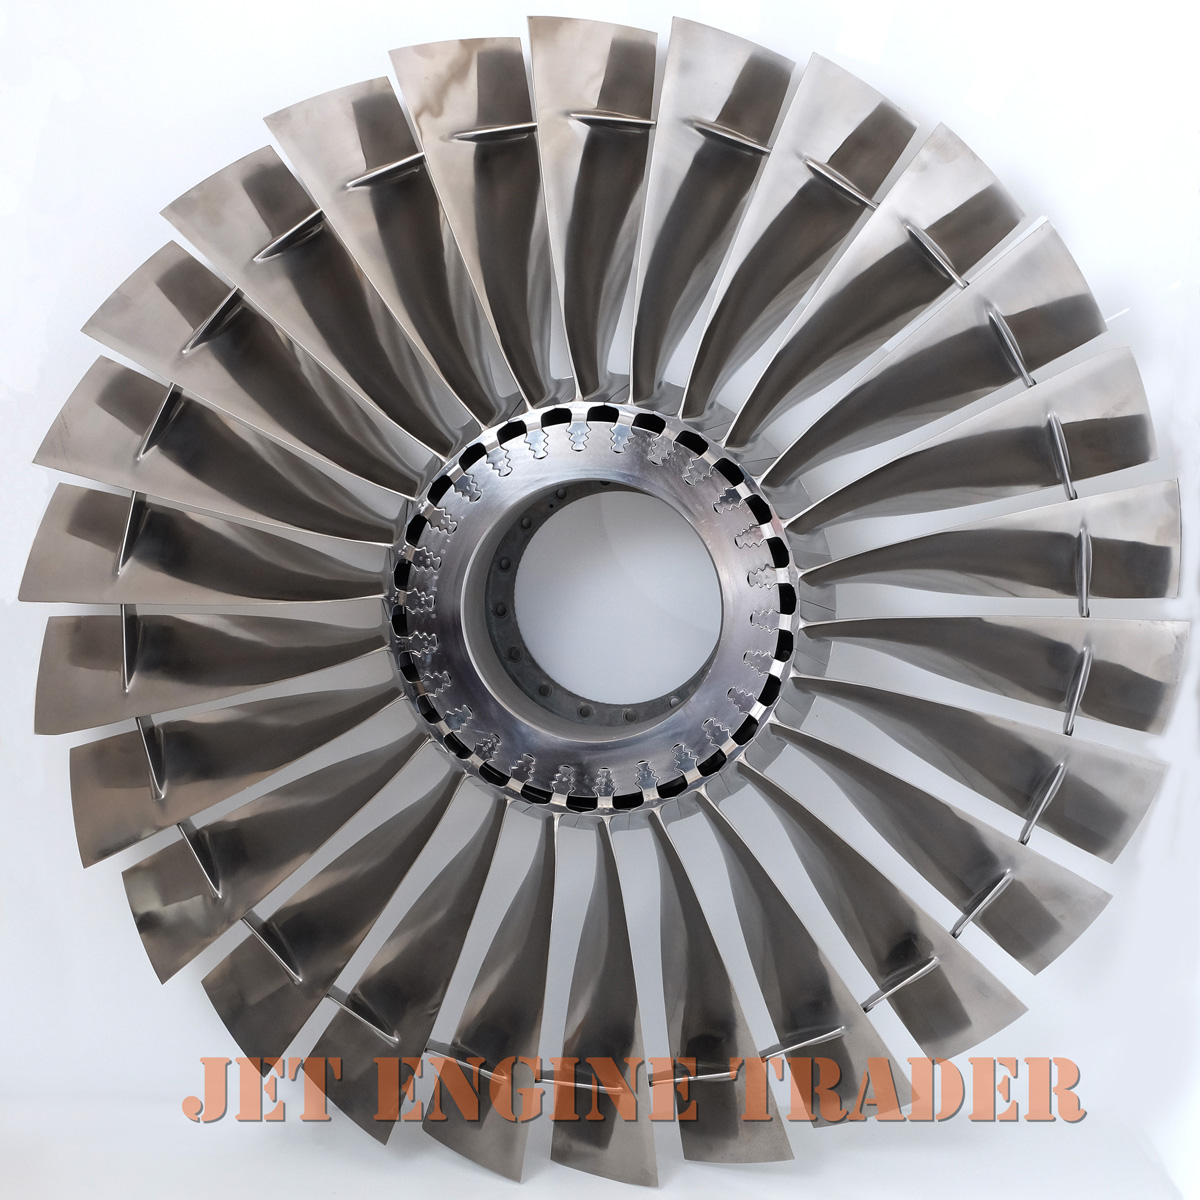 Jet Engine Turbine Fan Www Pixshark Com Images